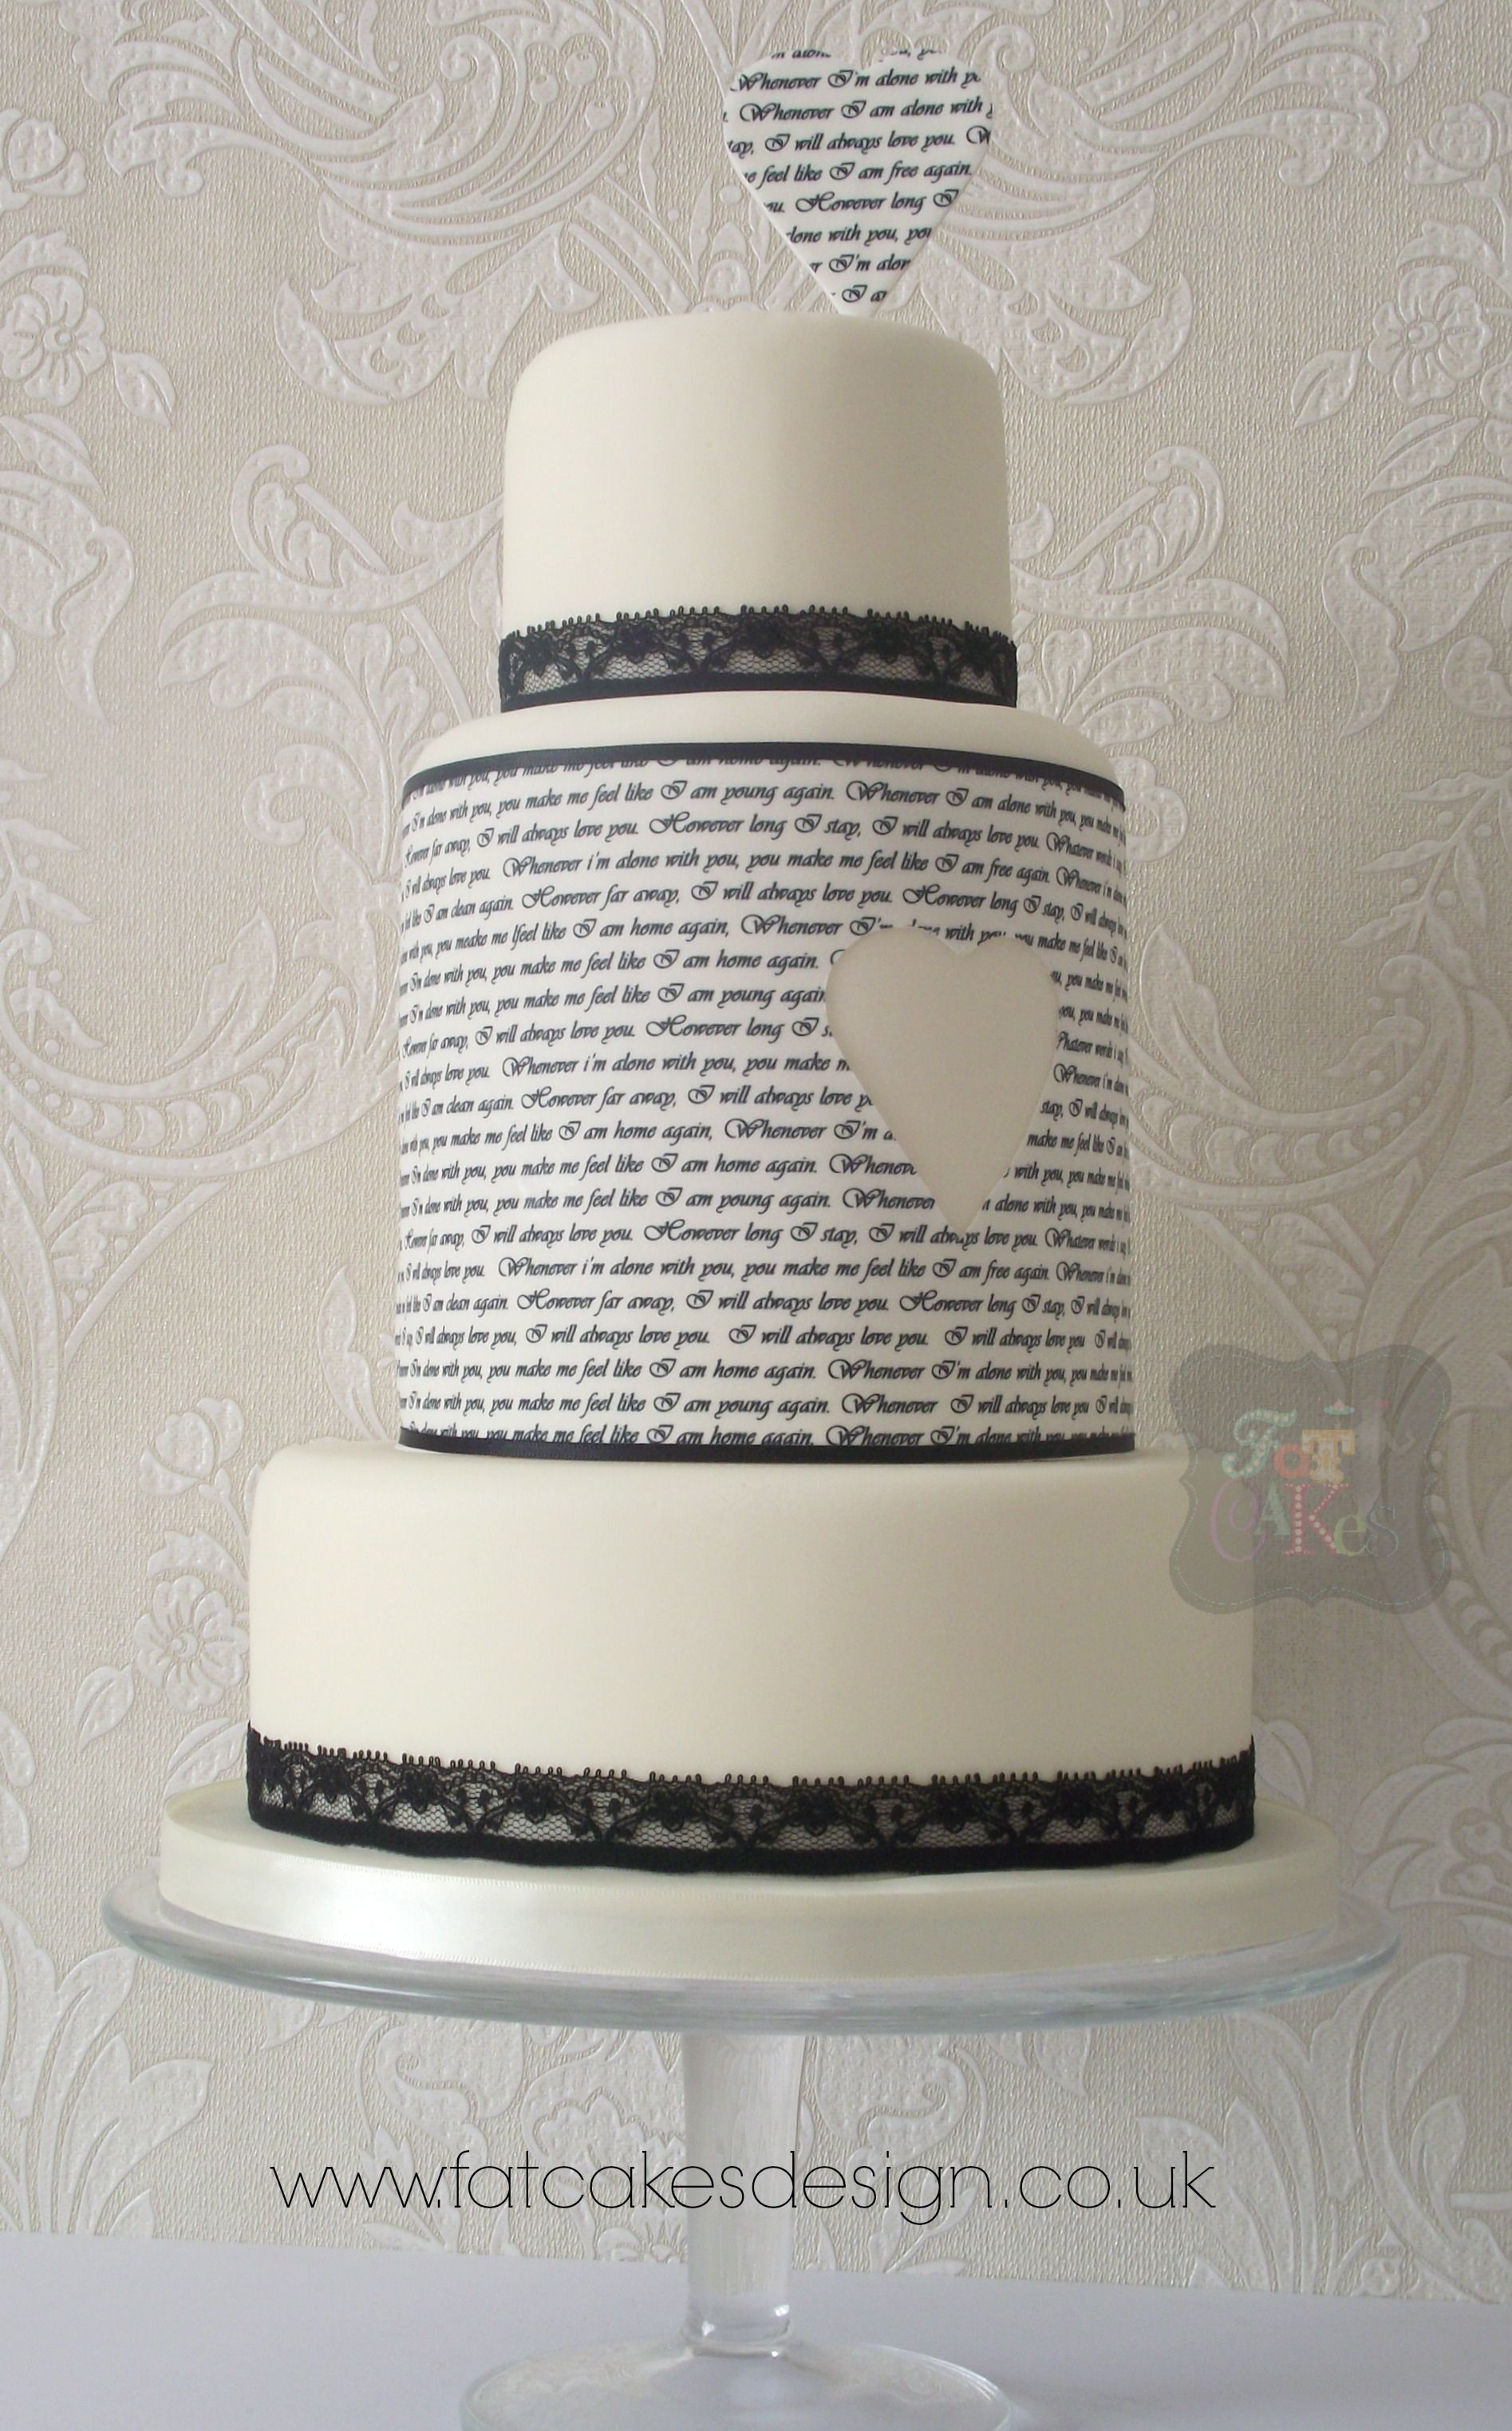 Cool Quirky Text Wedding Cake With Cutaway Heart A Great Way To Funny Birthday Cards Online Fluifree Goldxyz